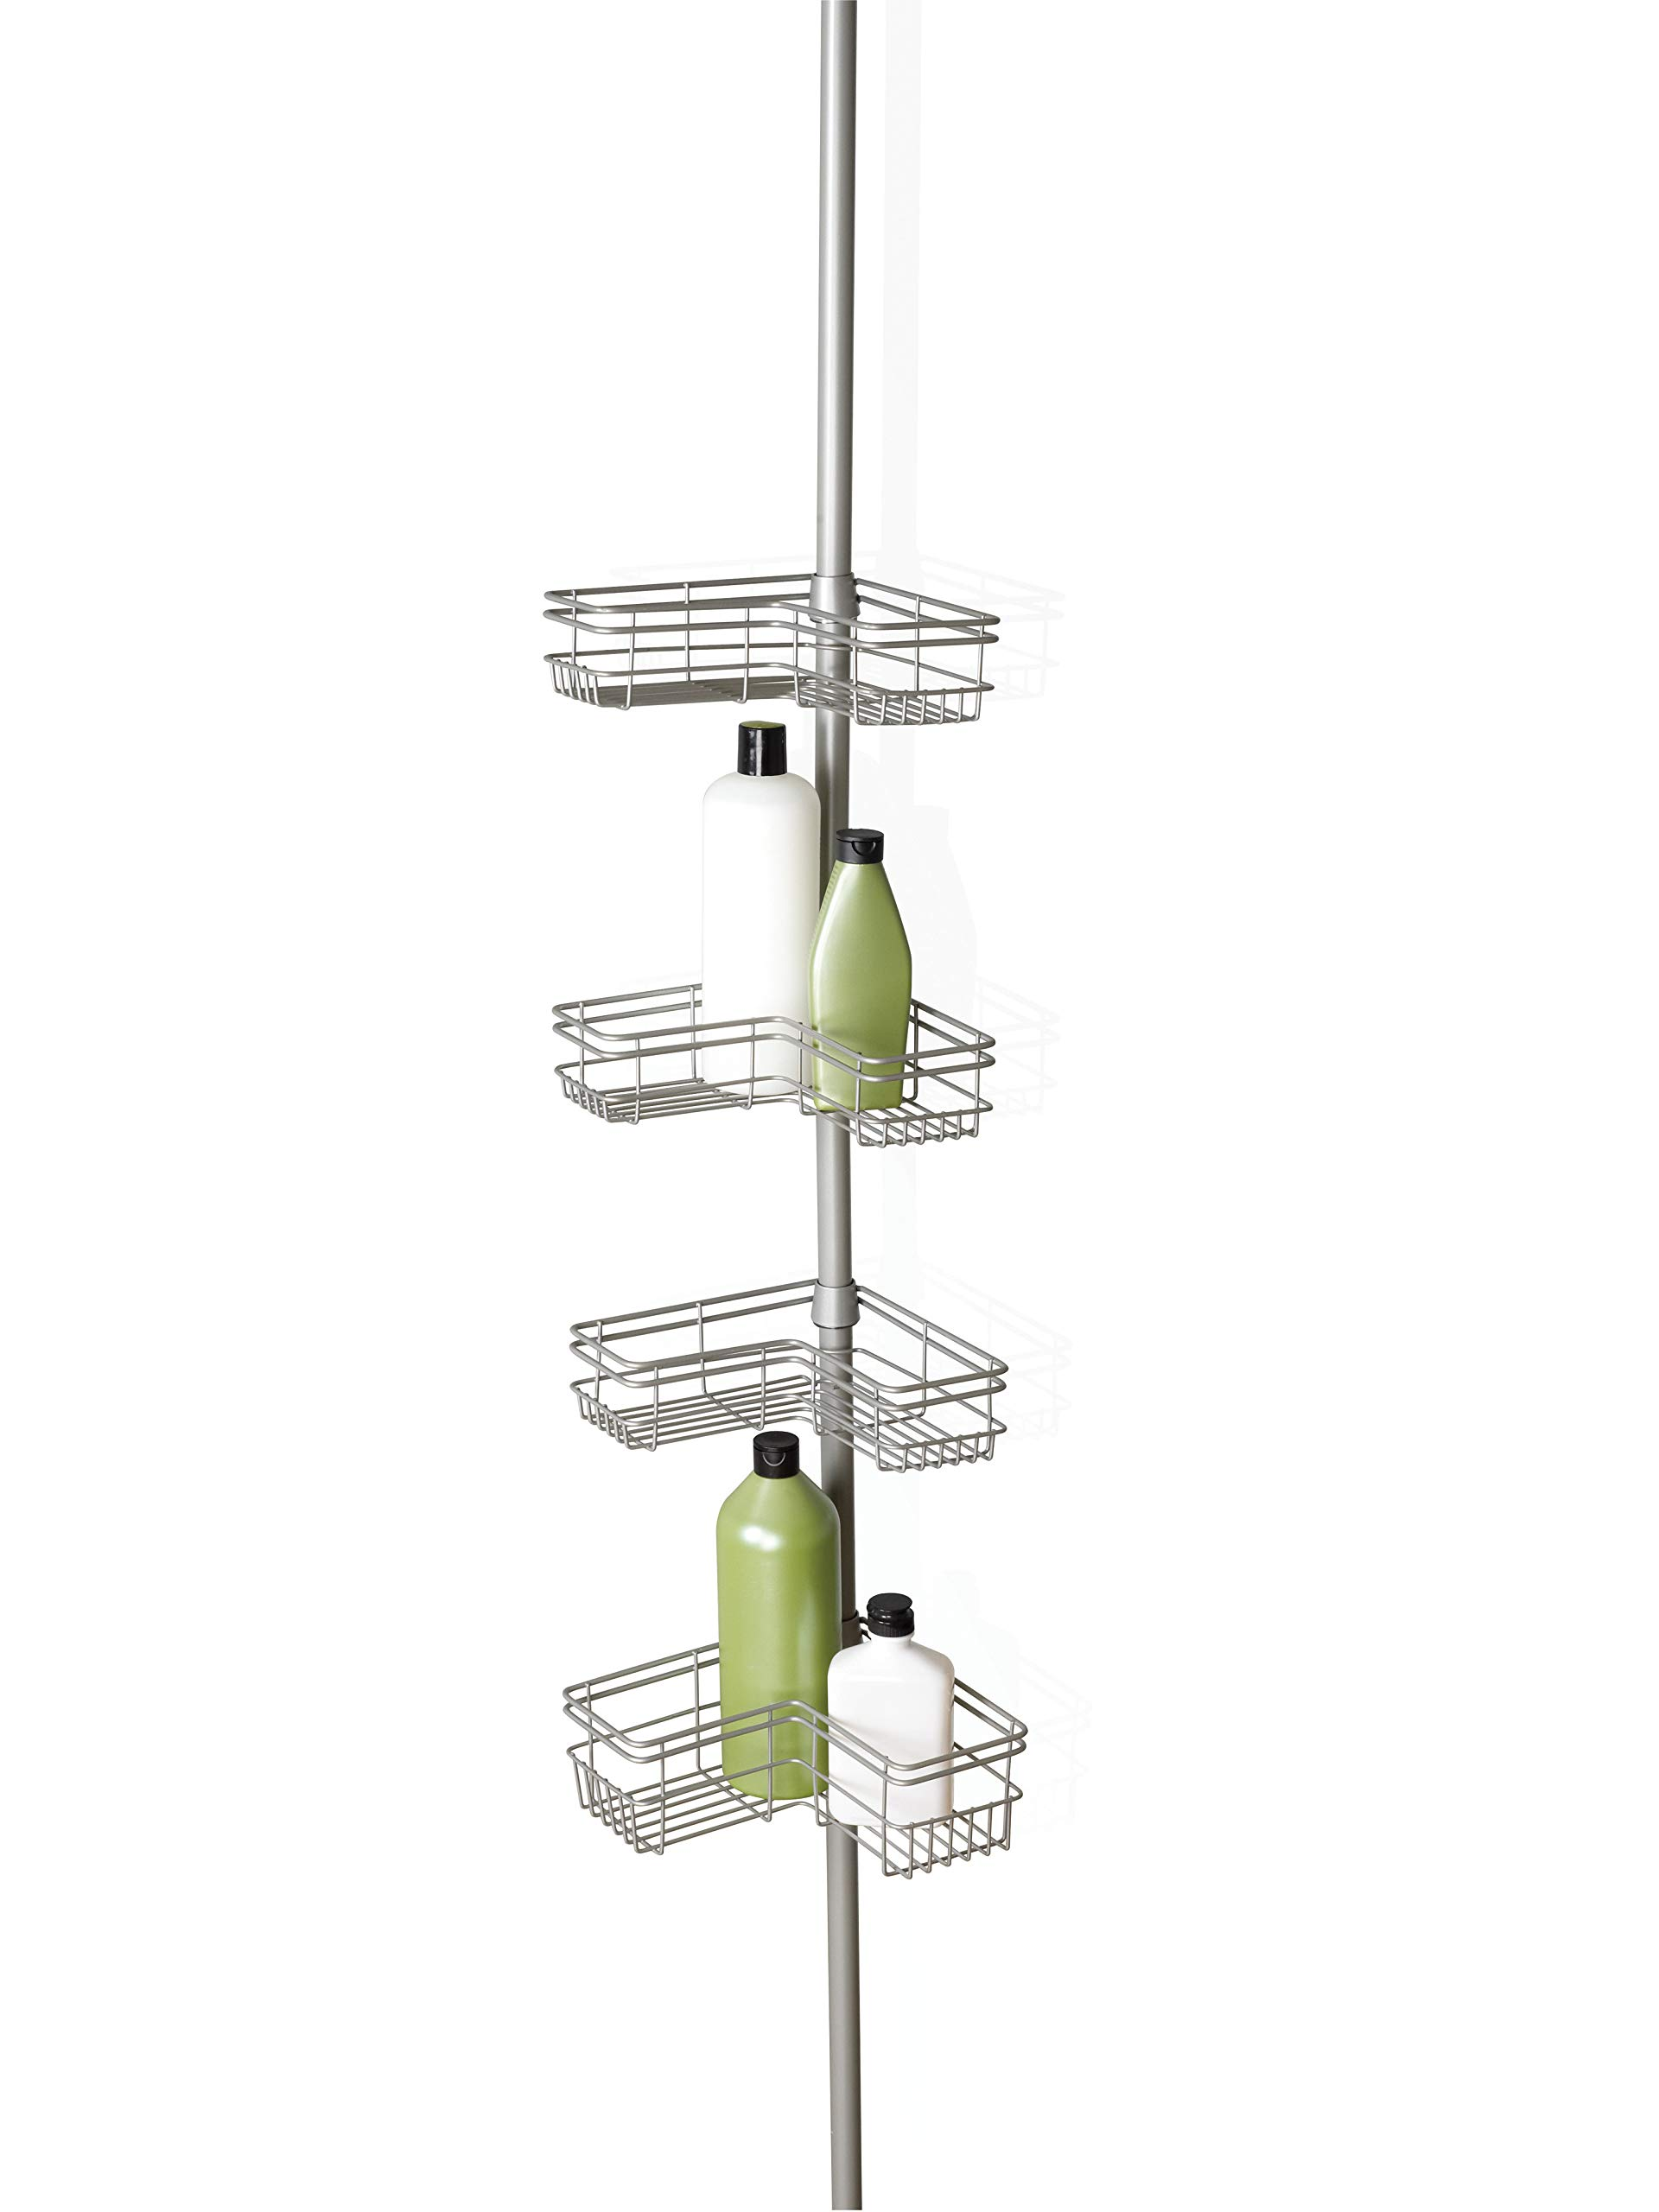 Satin Nickel NEW Shower Corner Pole Caddy Shelf Organizer Bath Storage Bathroom